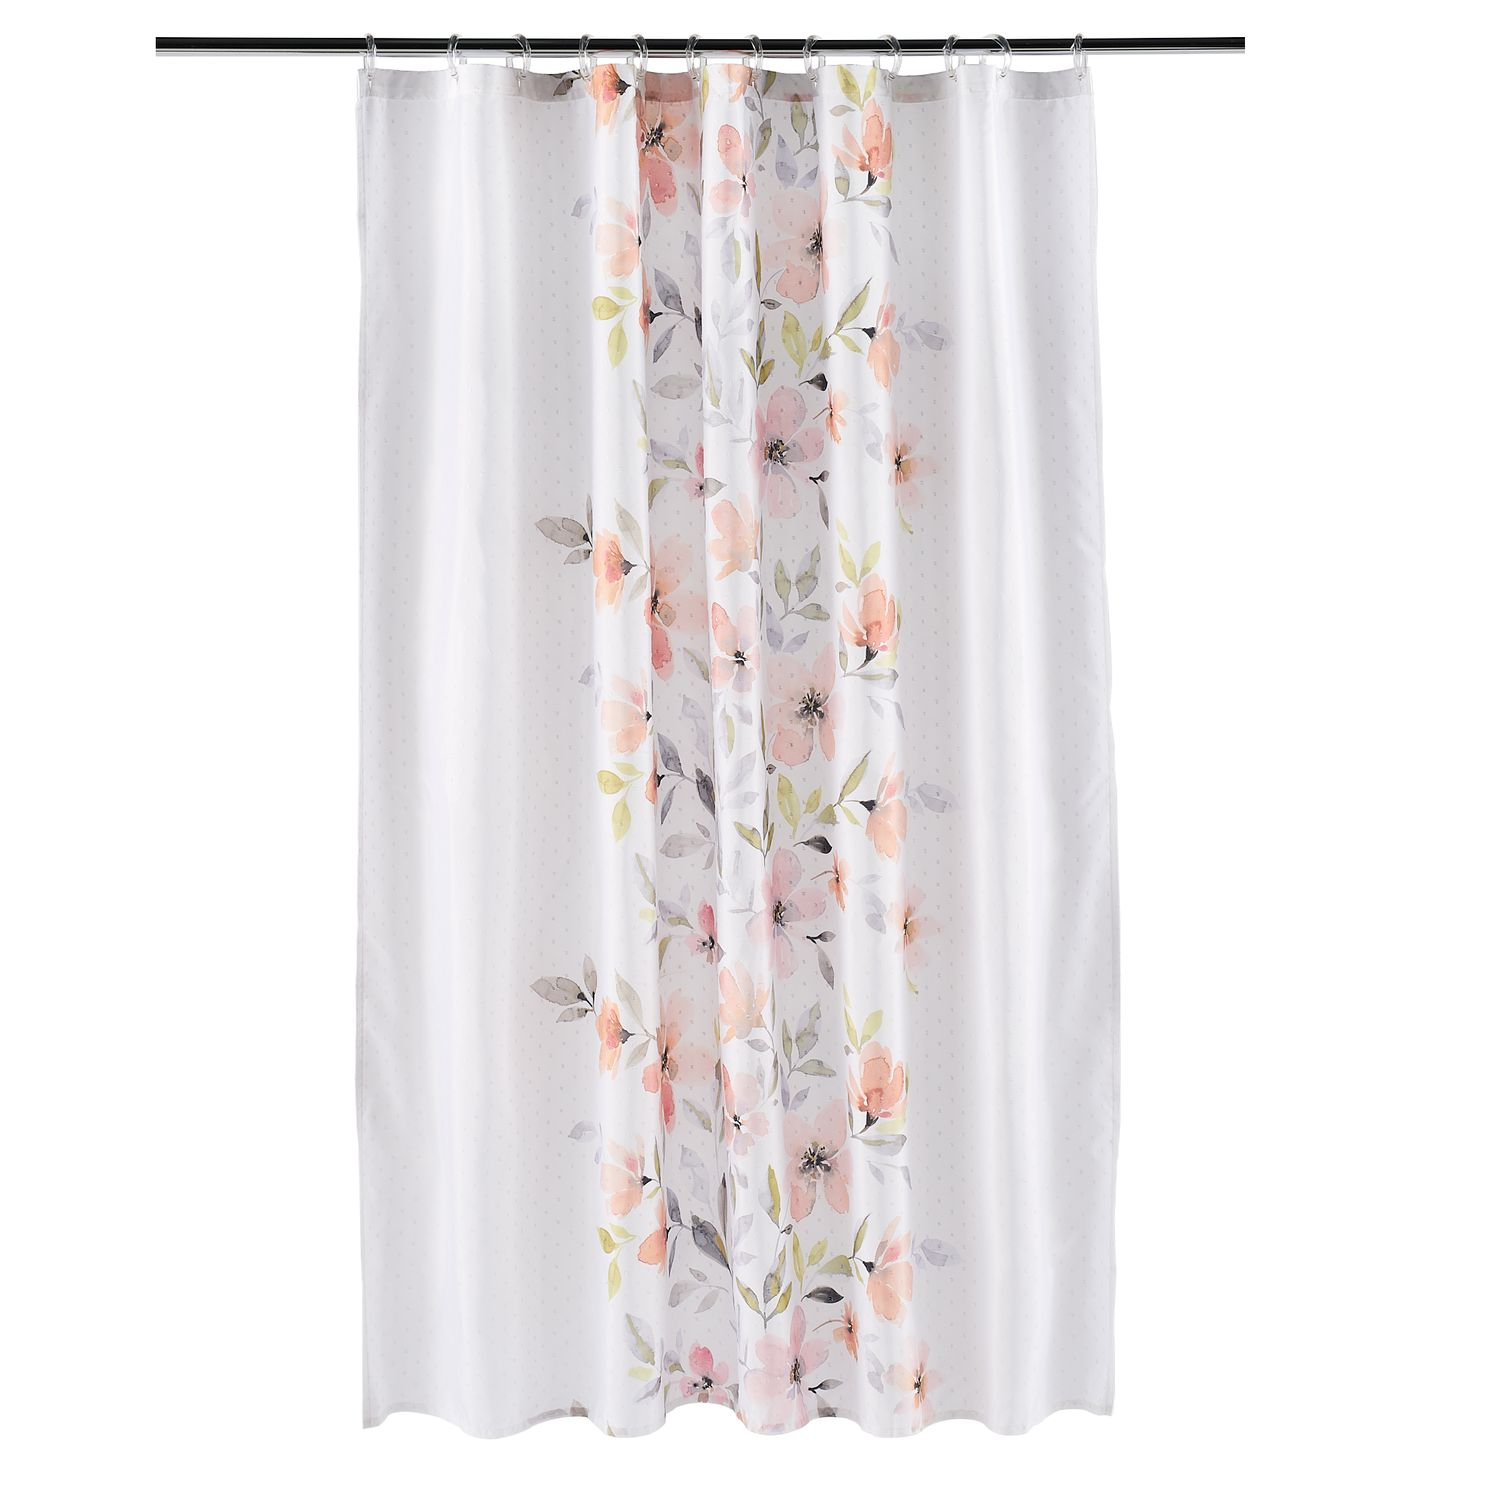 Saturday Knight, Ltd. Resting Garden Fabric Shower Curtain